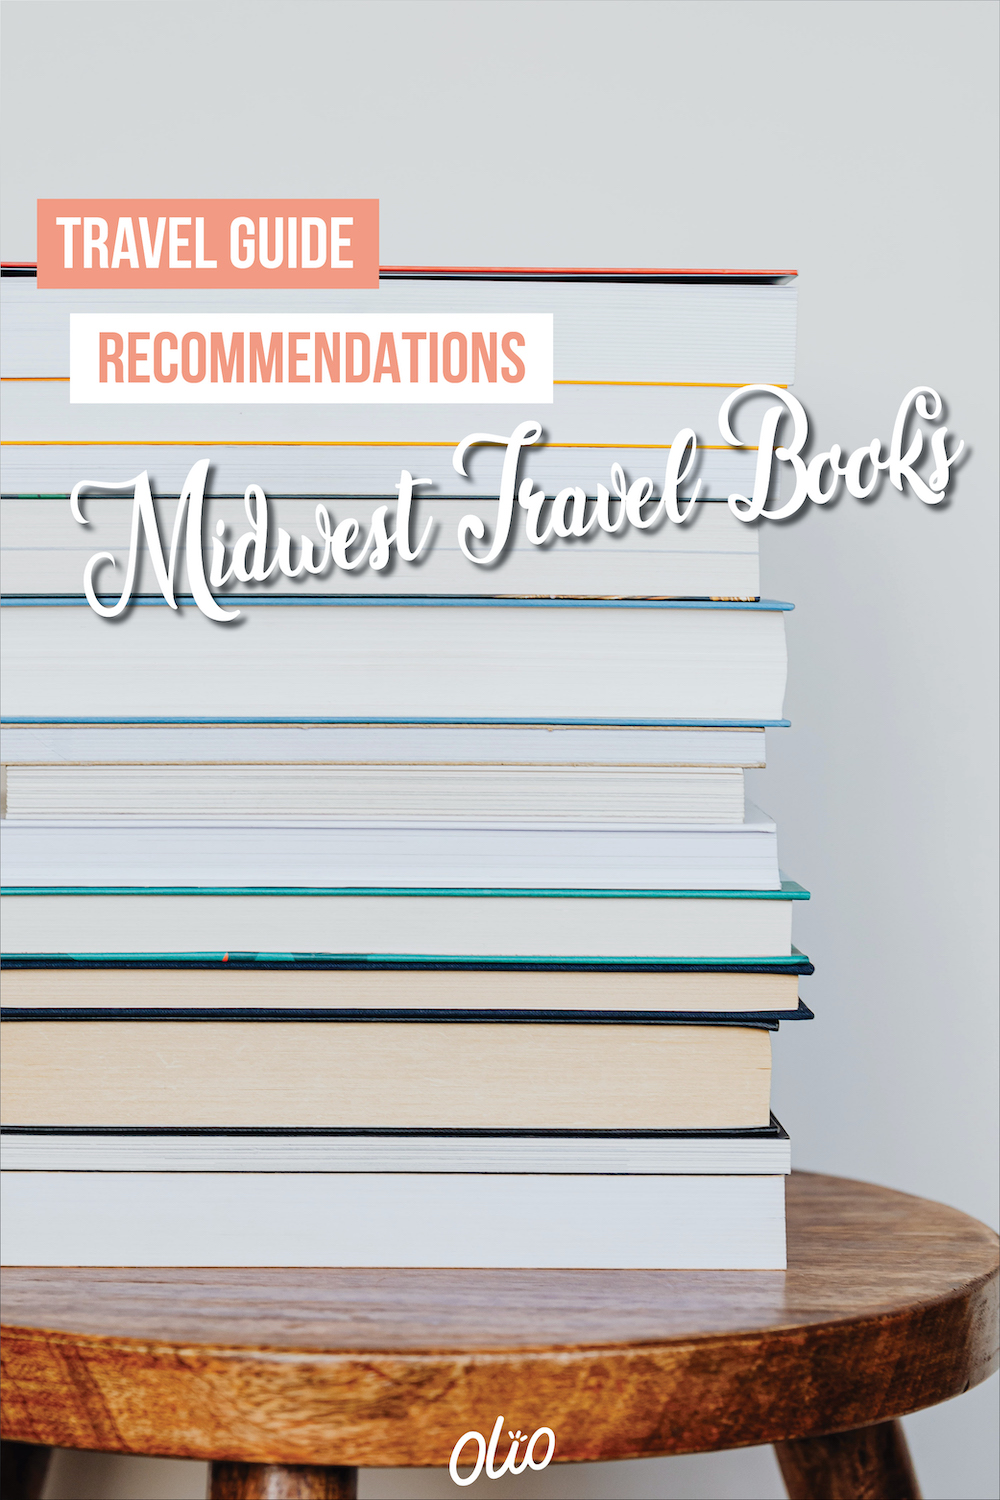 Planning a trip? Looking to indulge your wanderlust? These Midwest travel books will do just the trick! Whether you're planning a trip to the Midwest or looking for an inspiring novel, this list of 15+ books is full of recommendations. #books #travelguide